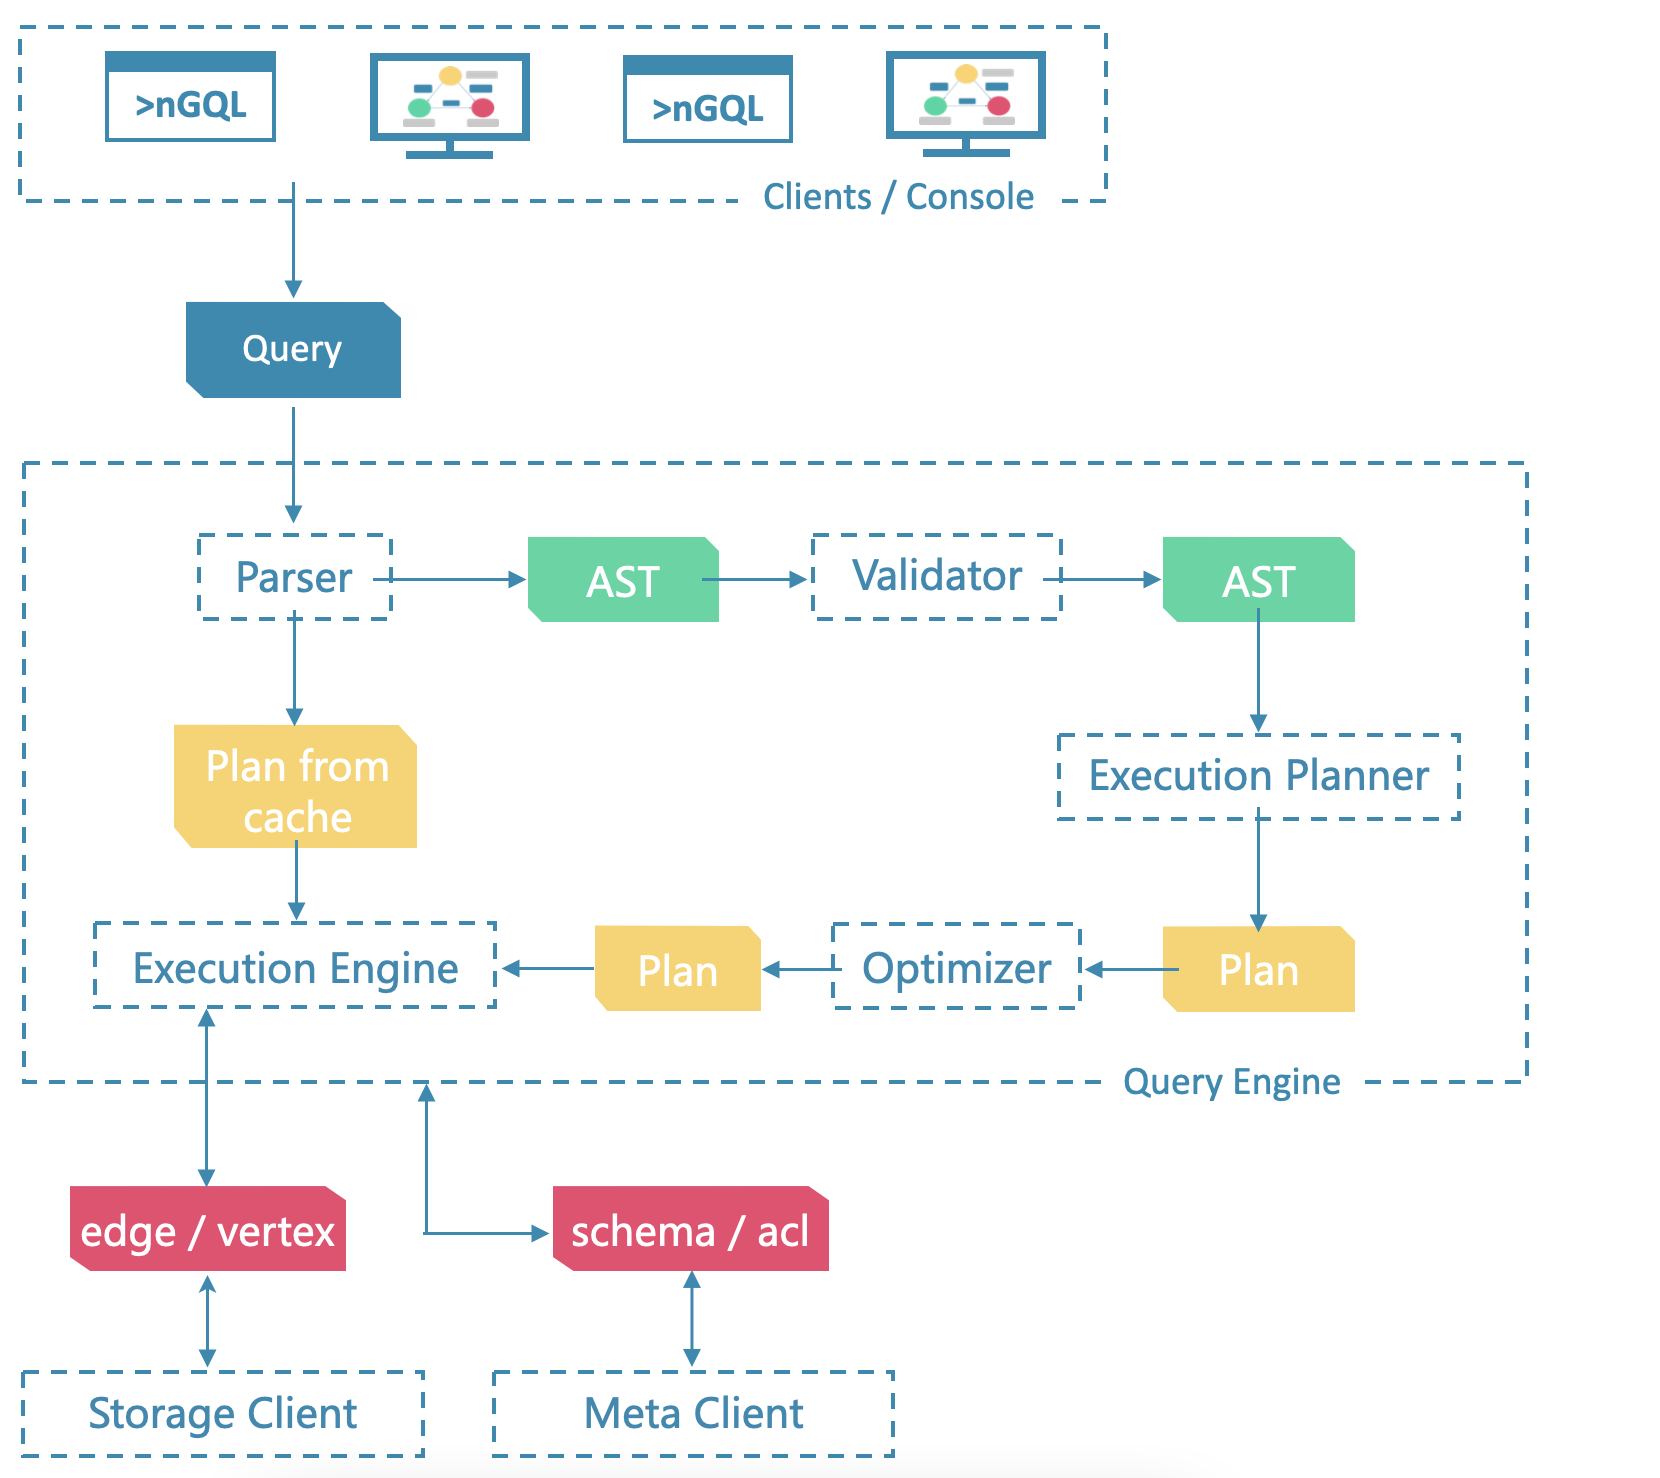 Architecture of the query engine